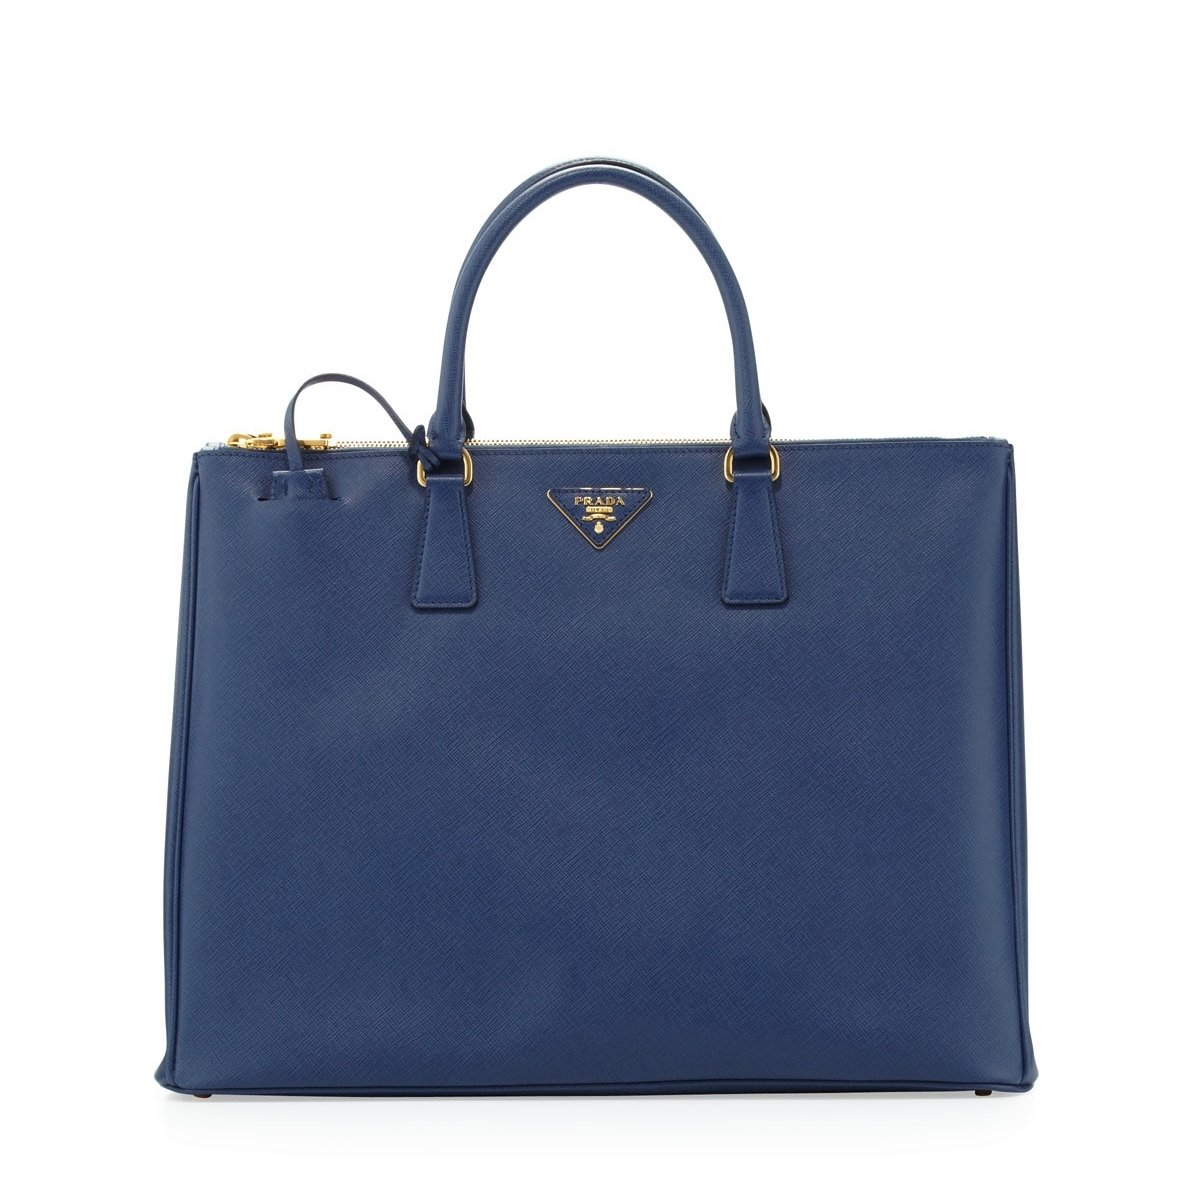 730cdd7dd2aad9 Prada Women's Tote Bag Saffiano Leather in Bluette Style BN1802:  Amazon.co.uk: Shoes & Bags